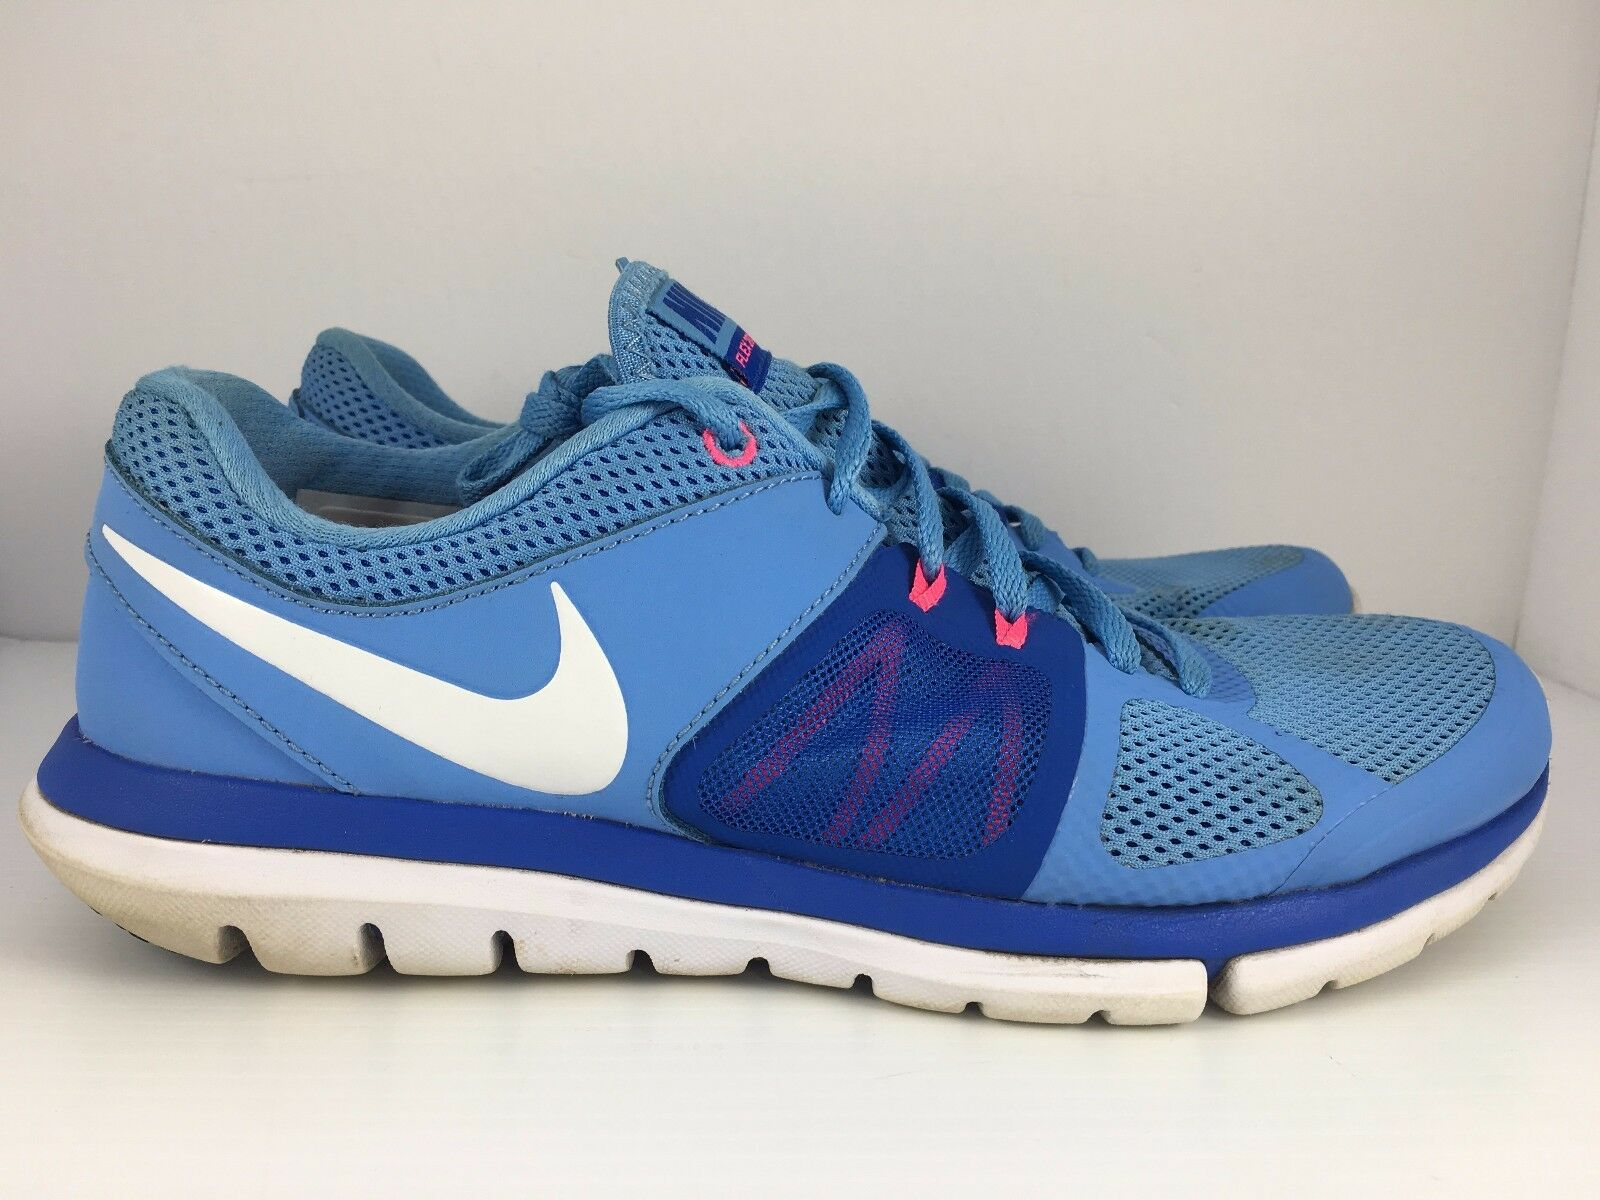 NIKE Flex 2014 Run Women US 10 Blue + White Athletic Running Trainers Shoes  J39 Brand discount